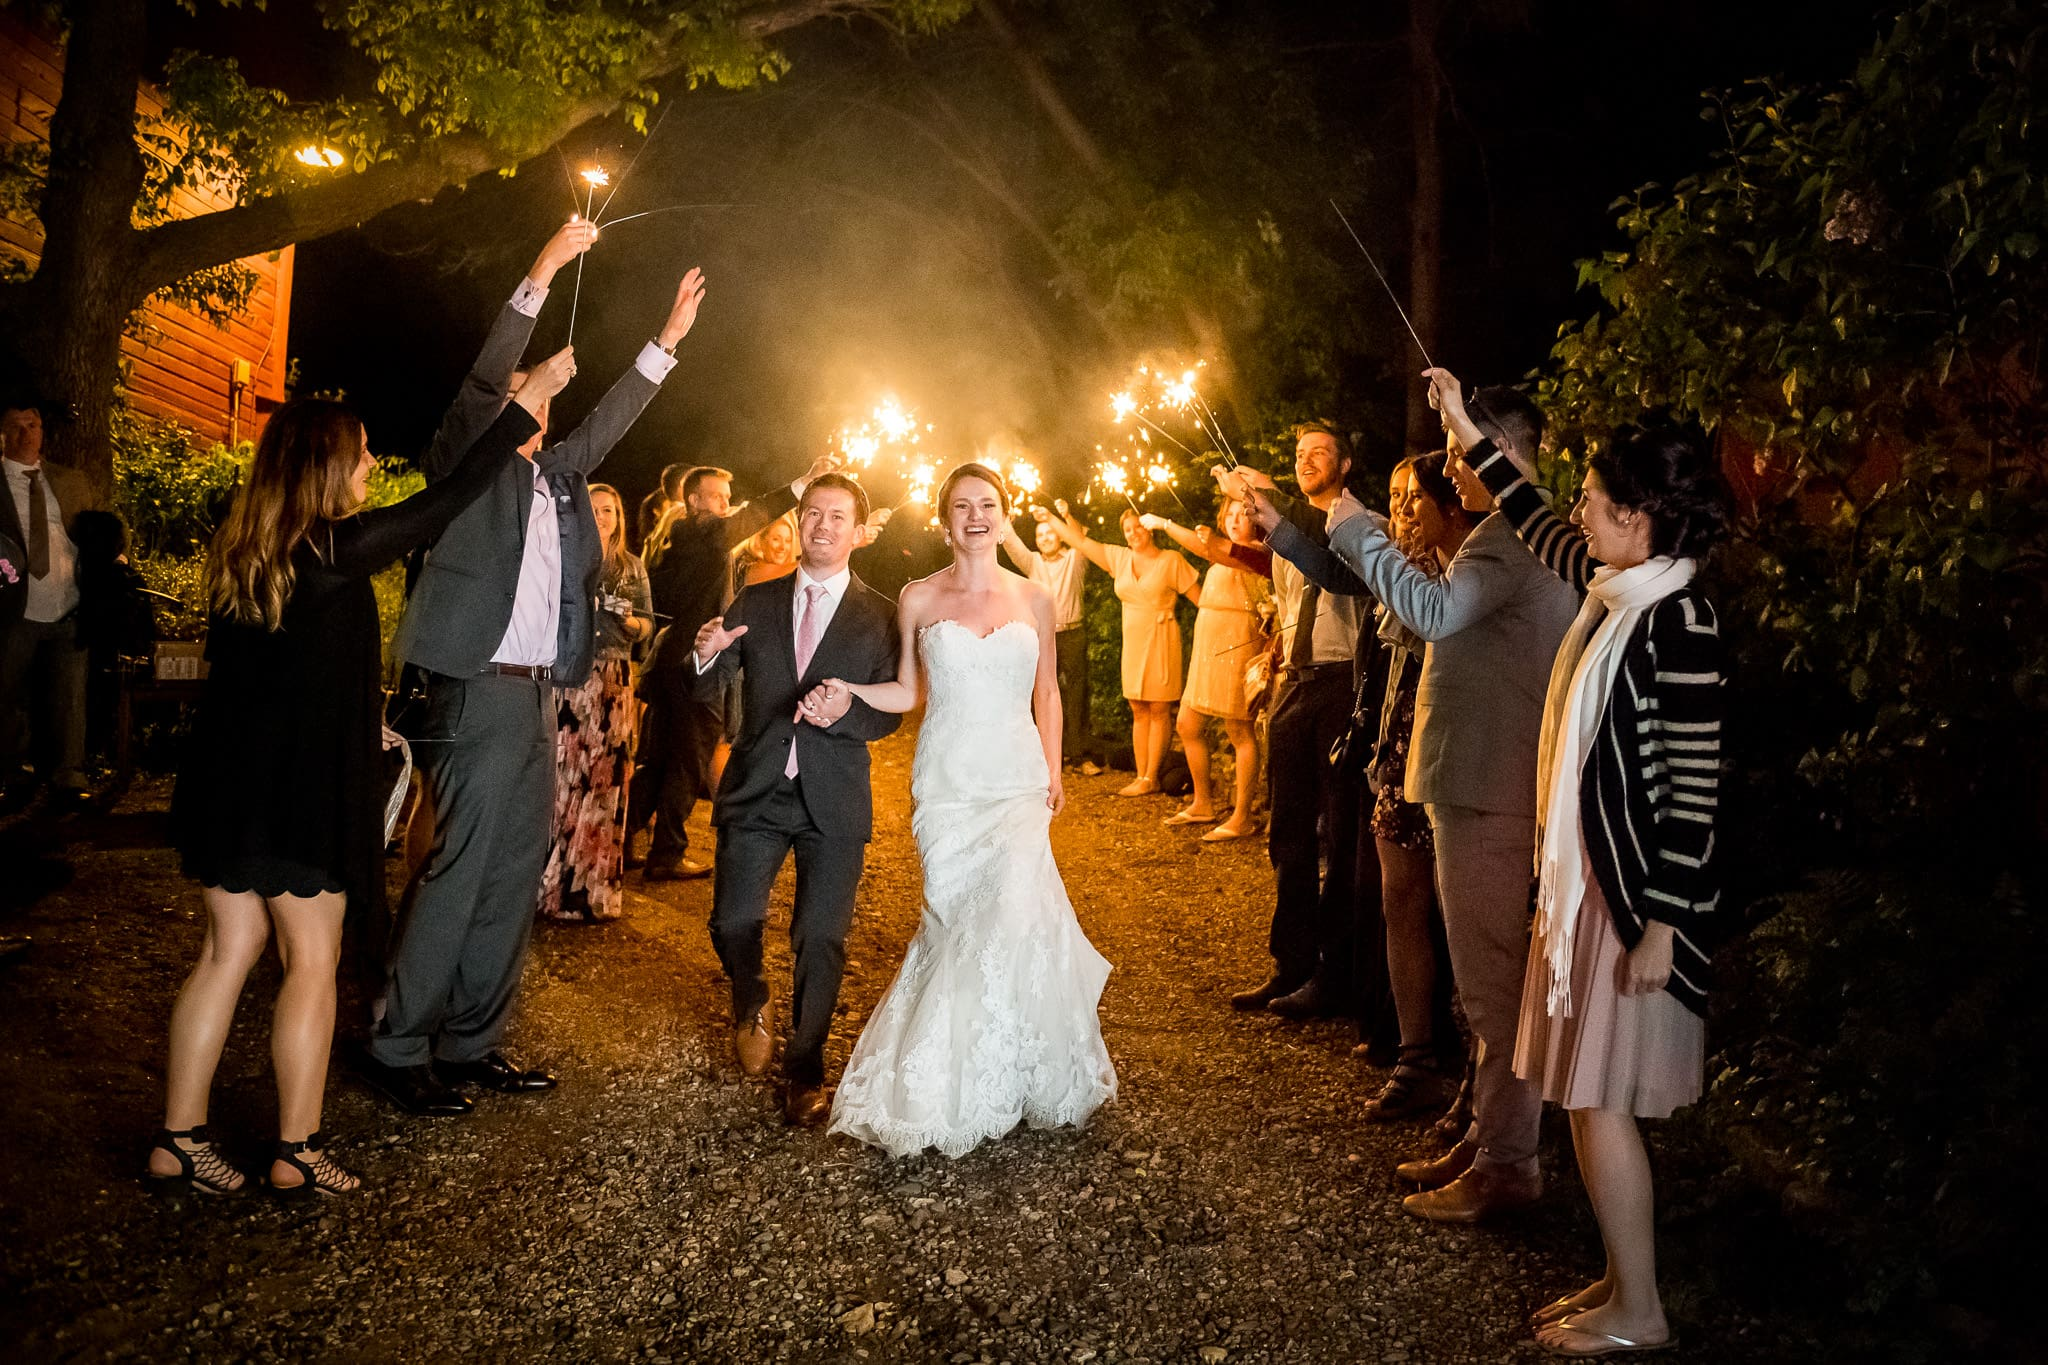 Bride and groom sparkler send off at the end of the wedding day at Camrose Hill Flower Farm